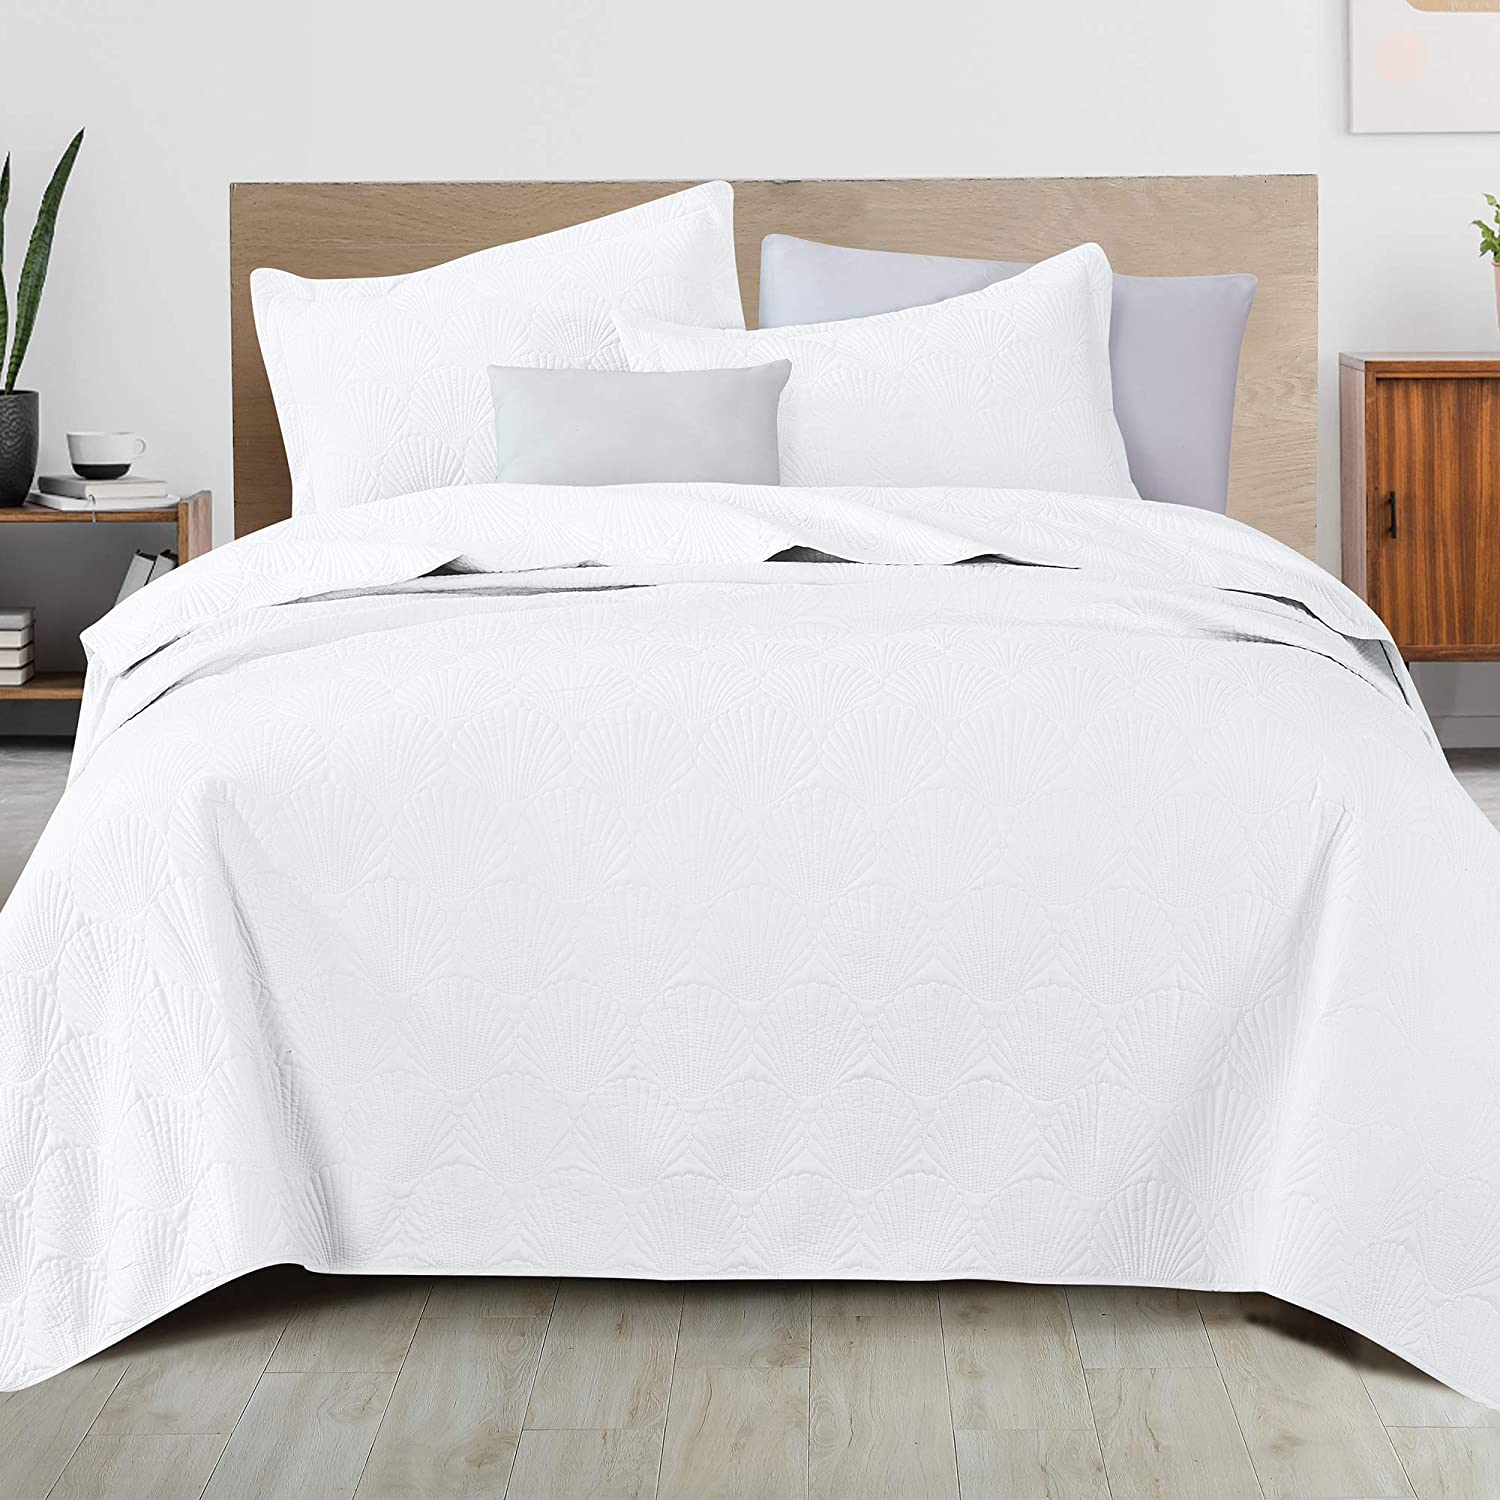 3-Piece Shell Stitched Solid Quilt Set with Sham. King Quilt Set, All Season Bedspread Quilt Set, Biscayne Bay Collection (King, White)